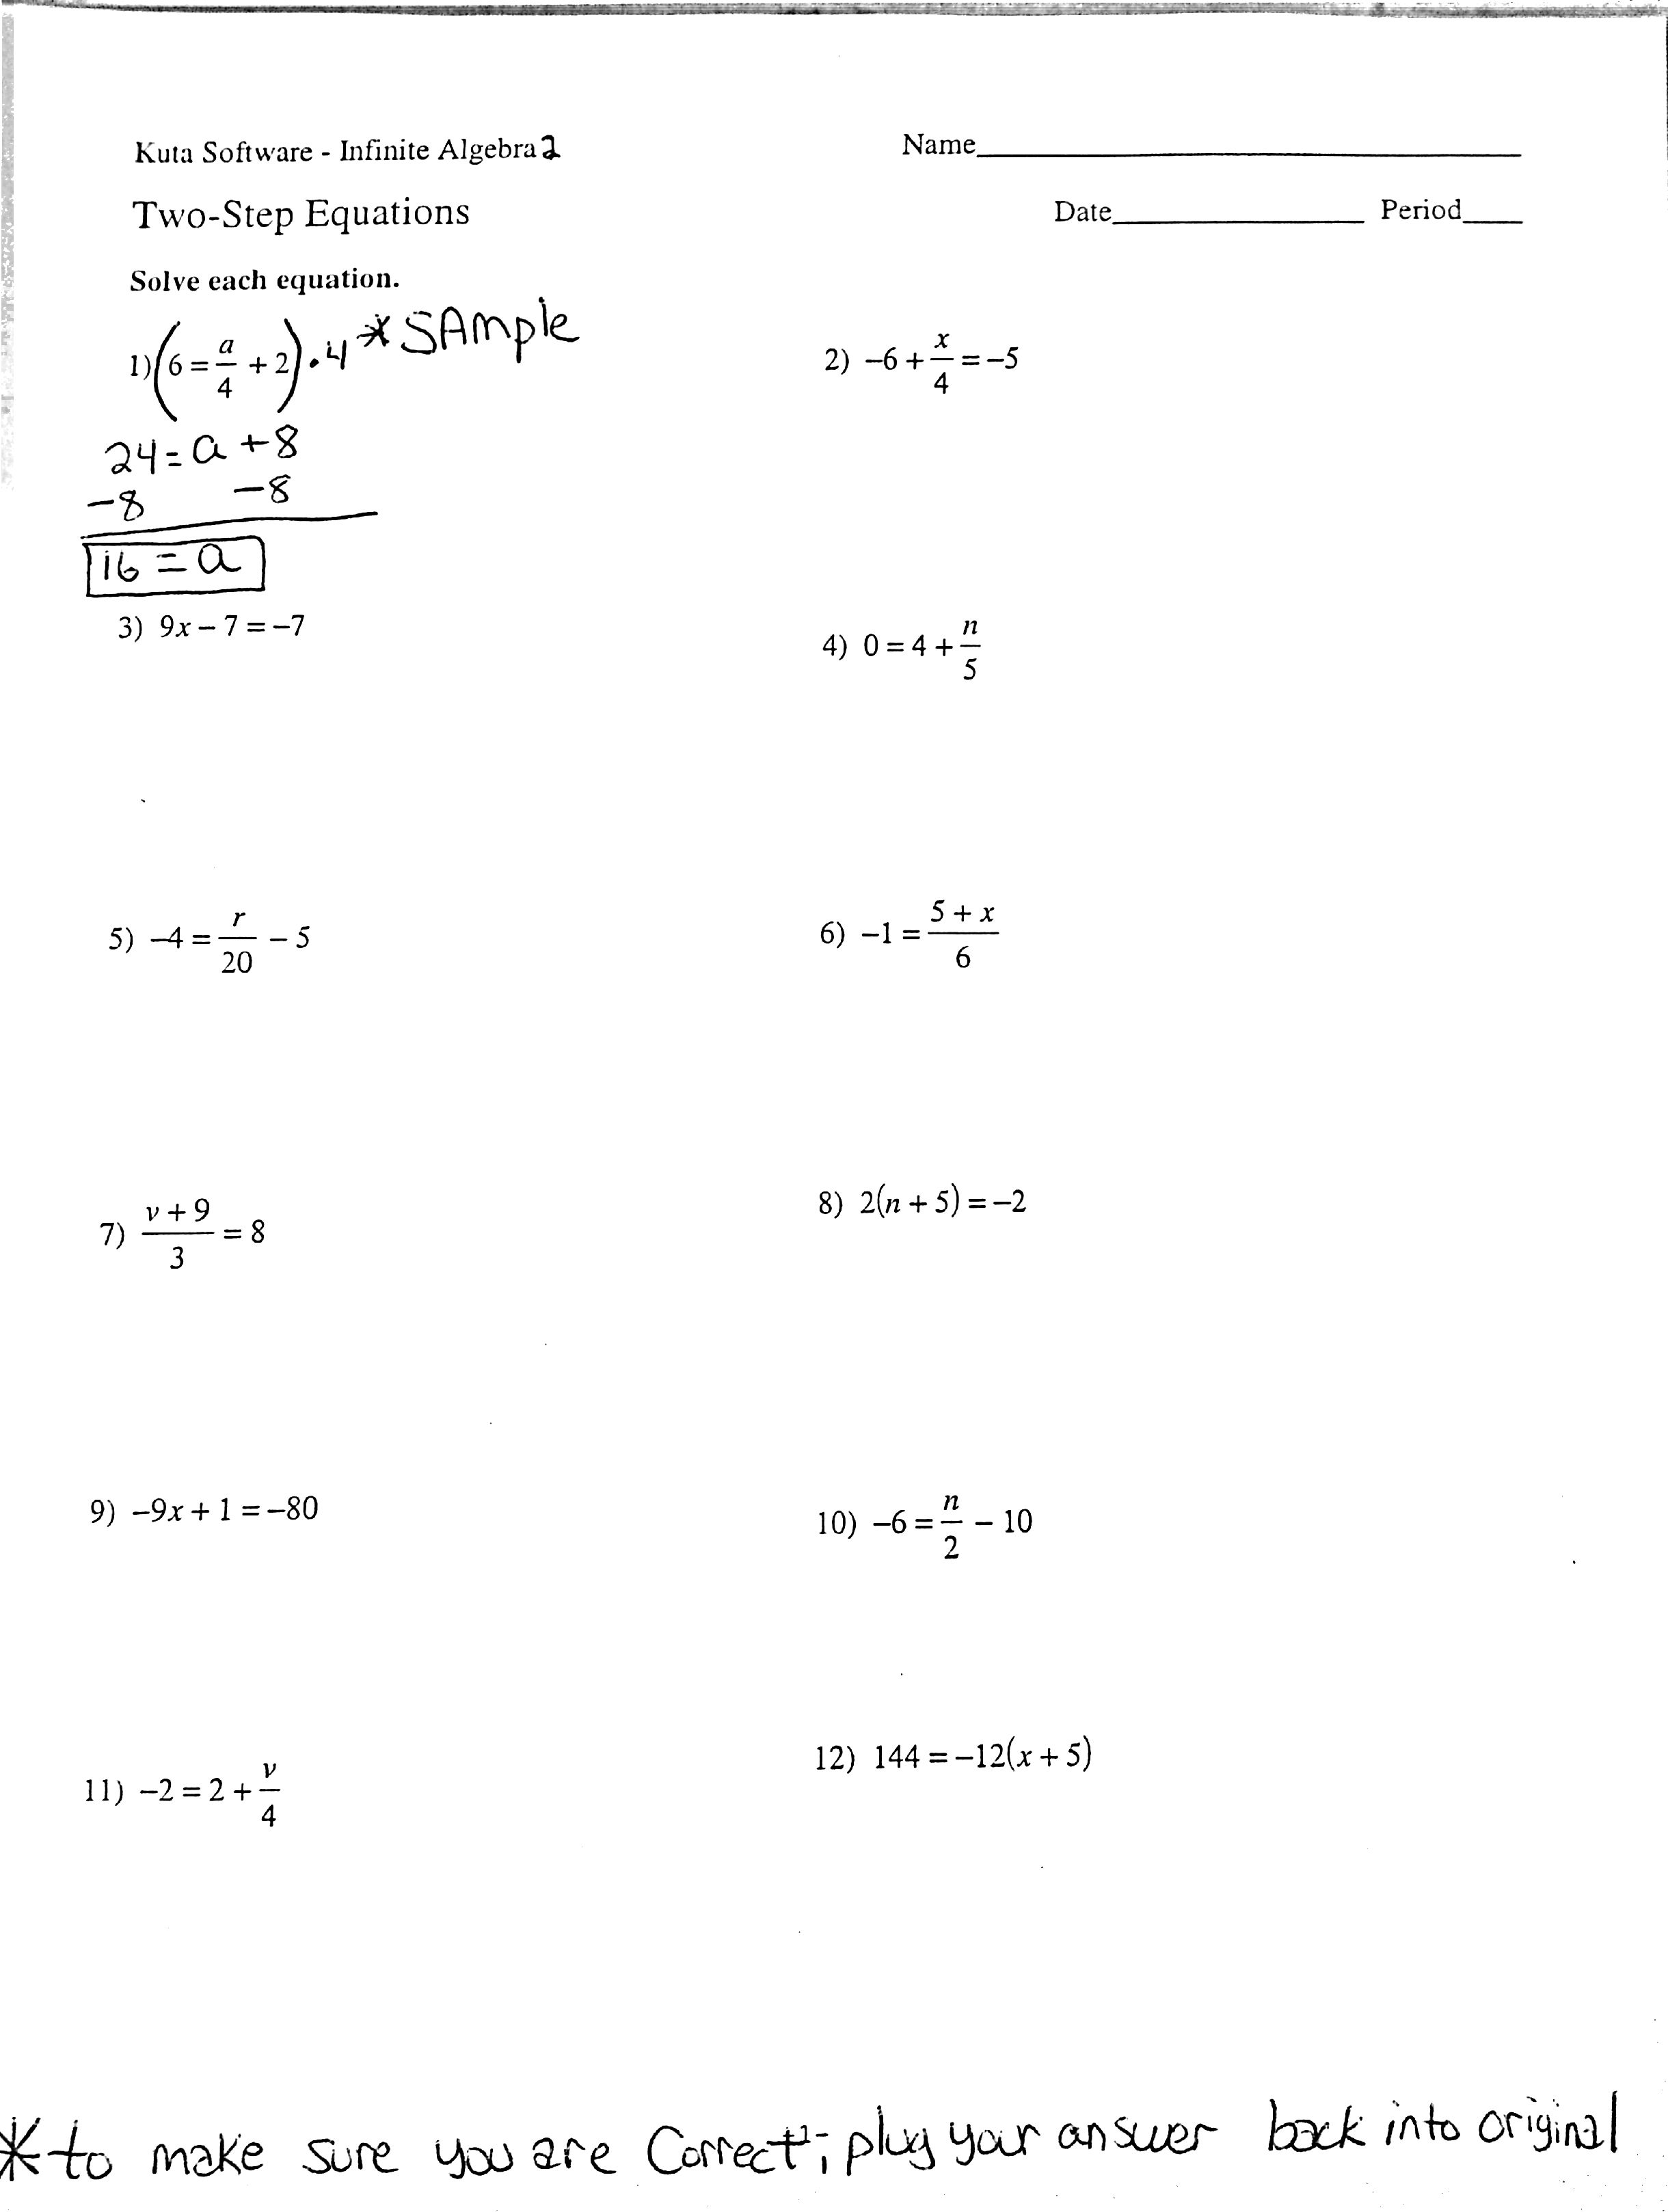 Printables Solving Two Step Equations Worksheets solving 2 step equations worksheets davezan two worksheet with answers plustheapp